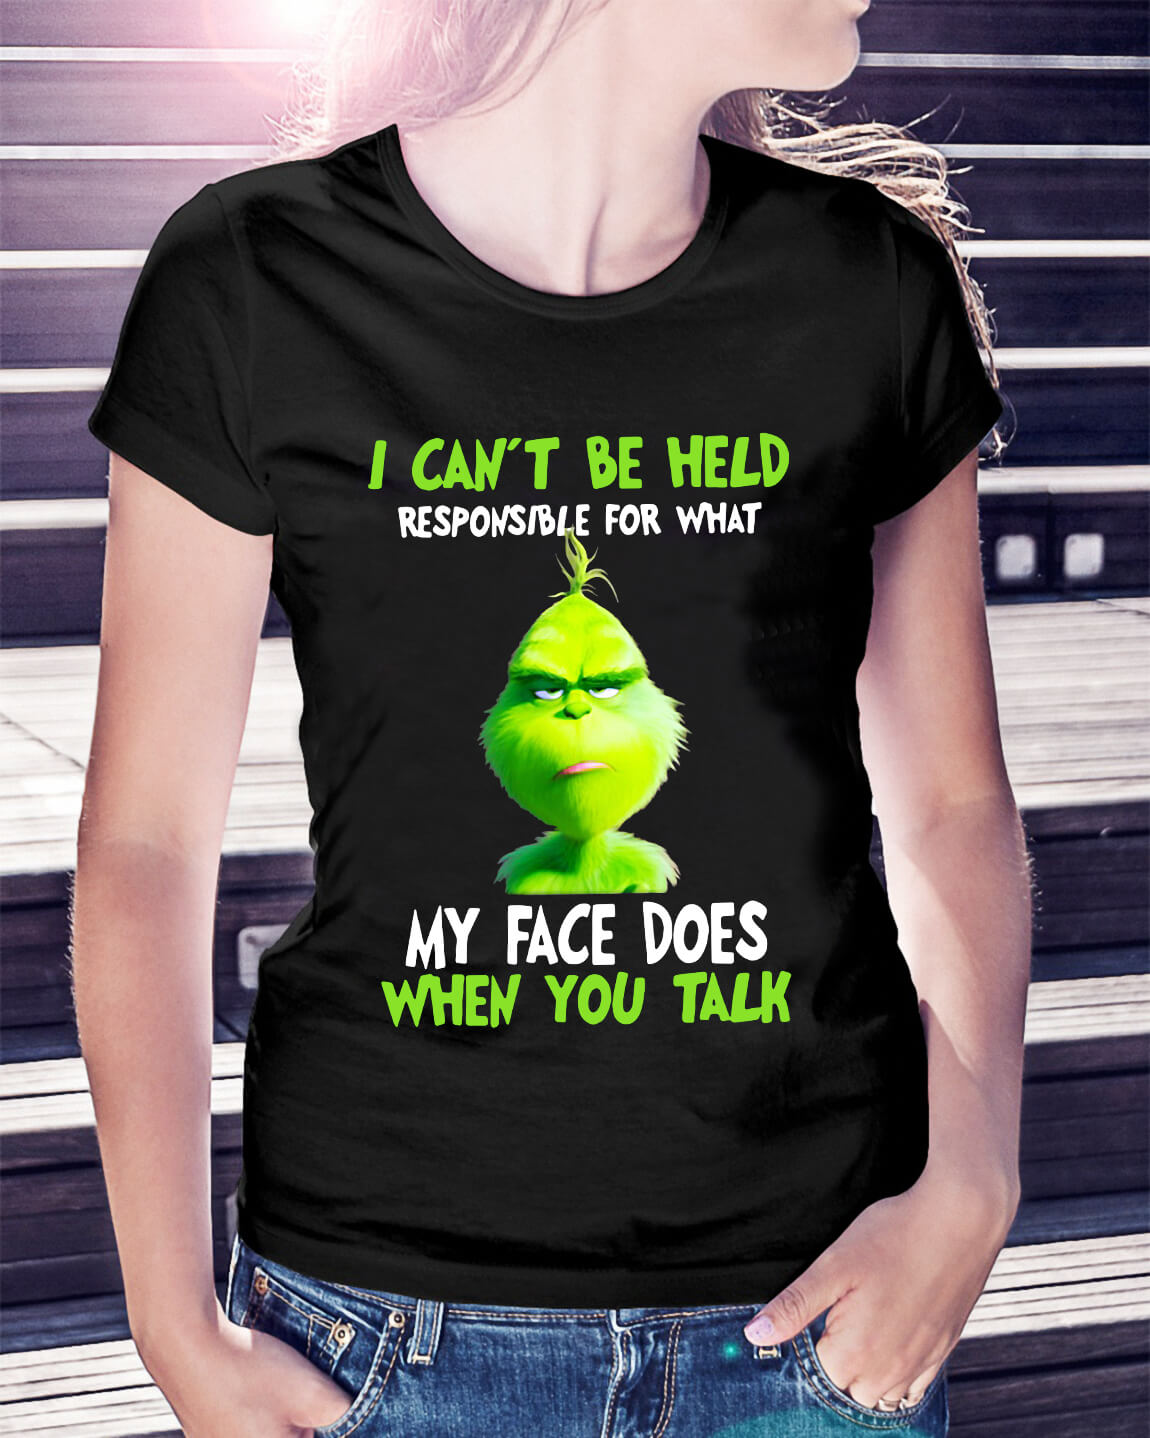 Grinch I can t be held responsible for what Christmas shirt 68c2811c7